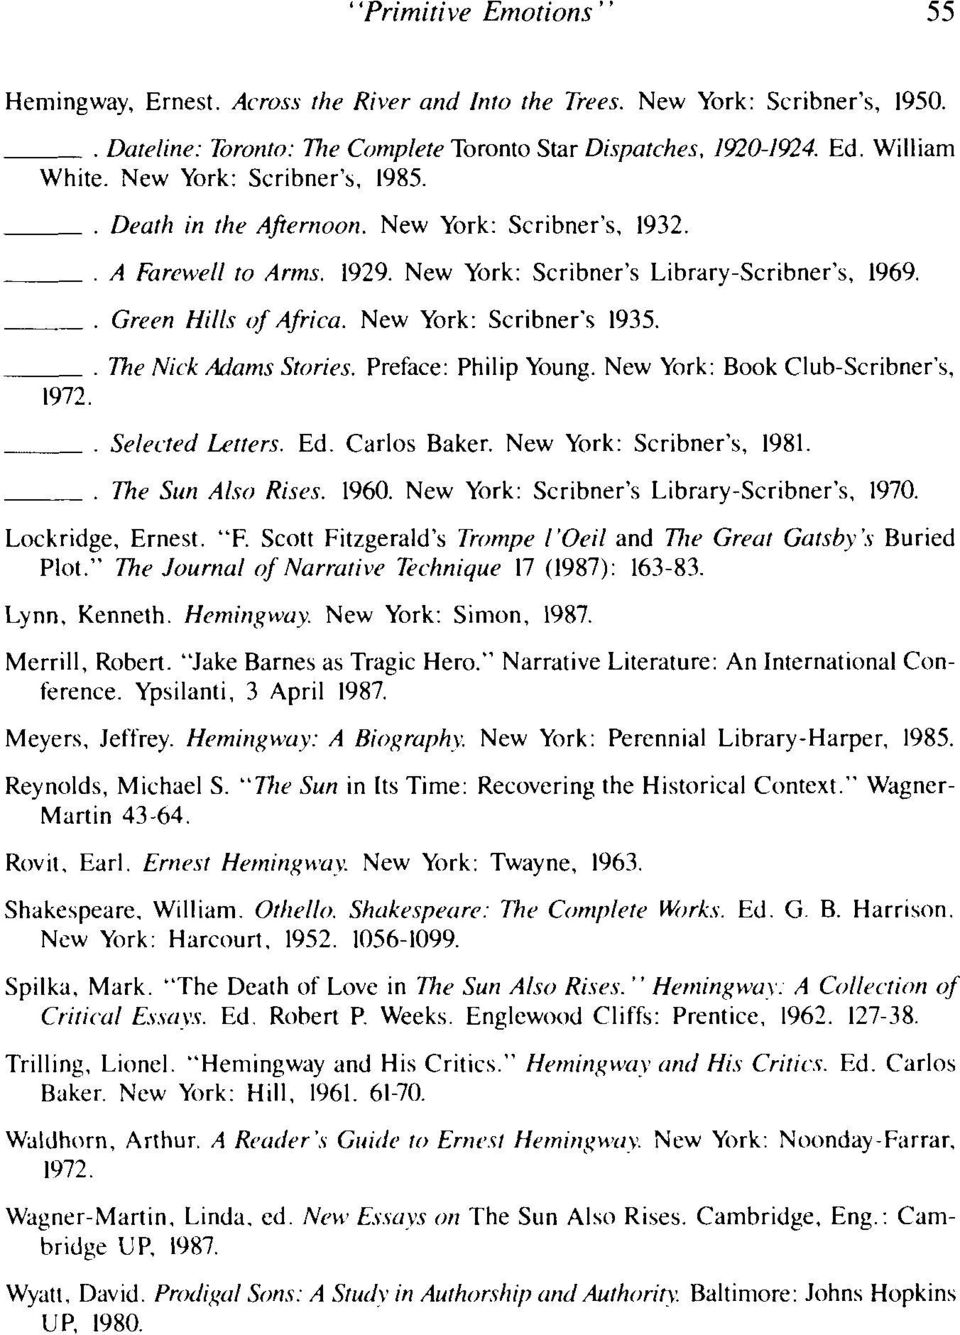 New York: Scribner's 1935. The Nick,&lams Stories. Preface: Philip Young. New York: Book Club-Scribner's, t972. Seletted lztters. Ed. Carlos Baker. New York: Scribner's. 1981.. The Sun Also Rises.